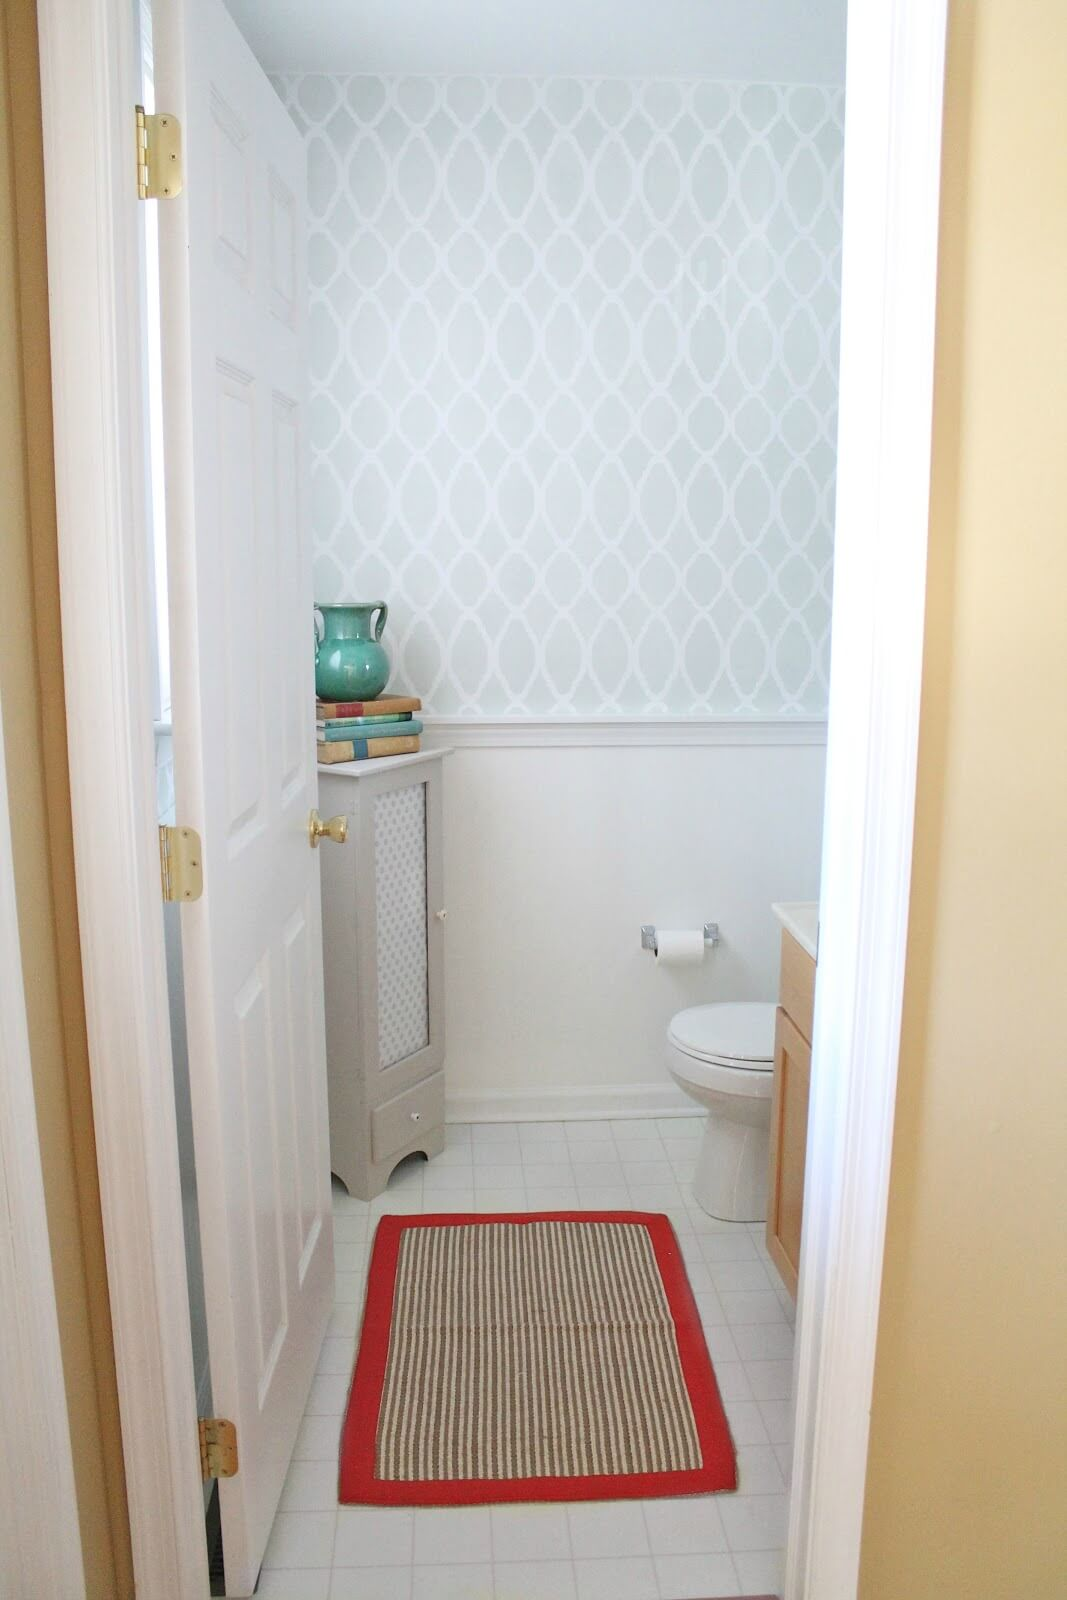 Updating Even a Small Powder Room Can Be Done in Stages